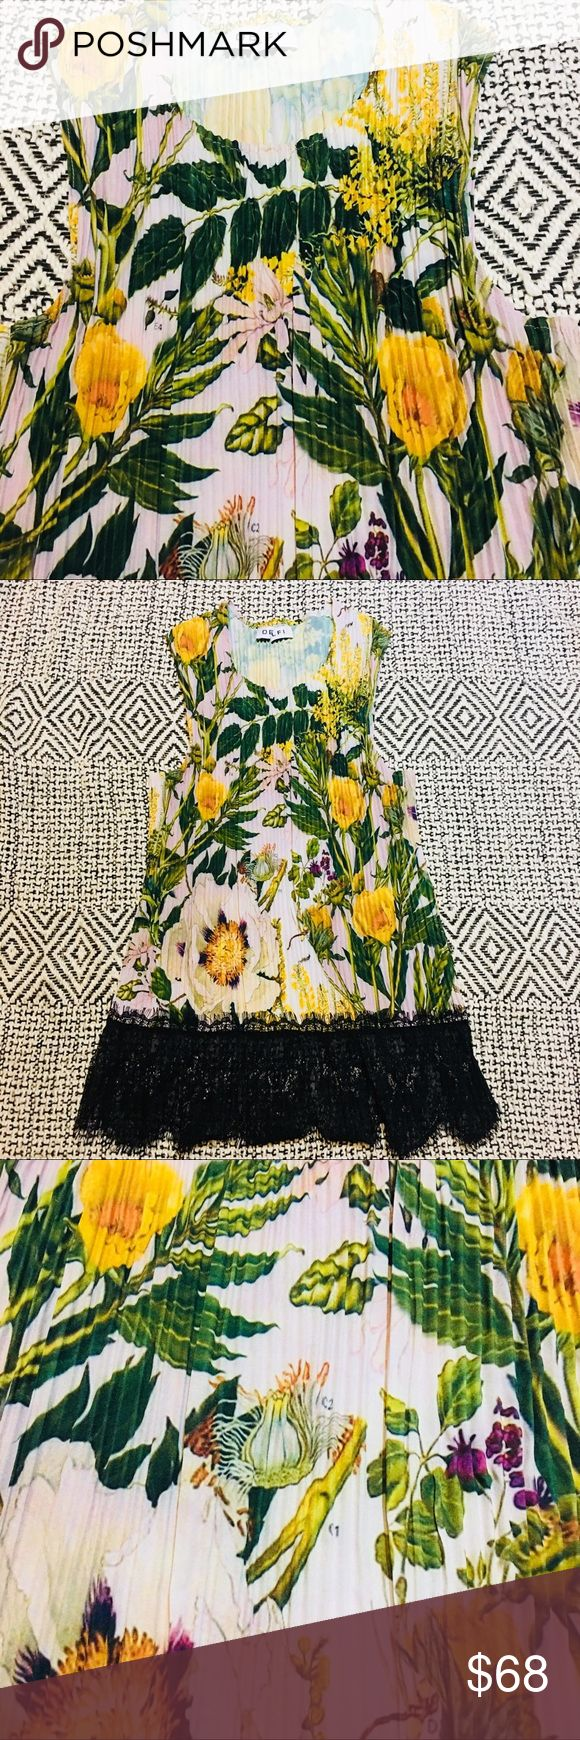 Floral Delfi Blouse Delphi @ Anthropologie floral accordion blouse with beautiful lace trim.   **Please note: This item is from a Sample Sale. Tags may be cut, damaged or missing (measurements are included when sizing is not). All sample sale items are NWOT.** Anthropologie Tops Blouses